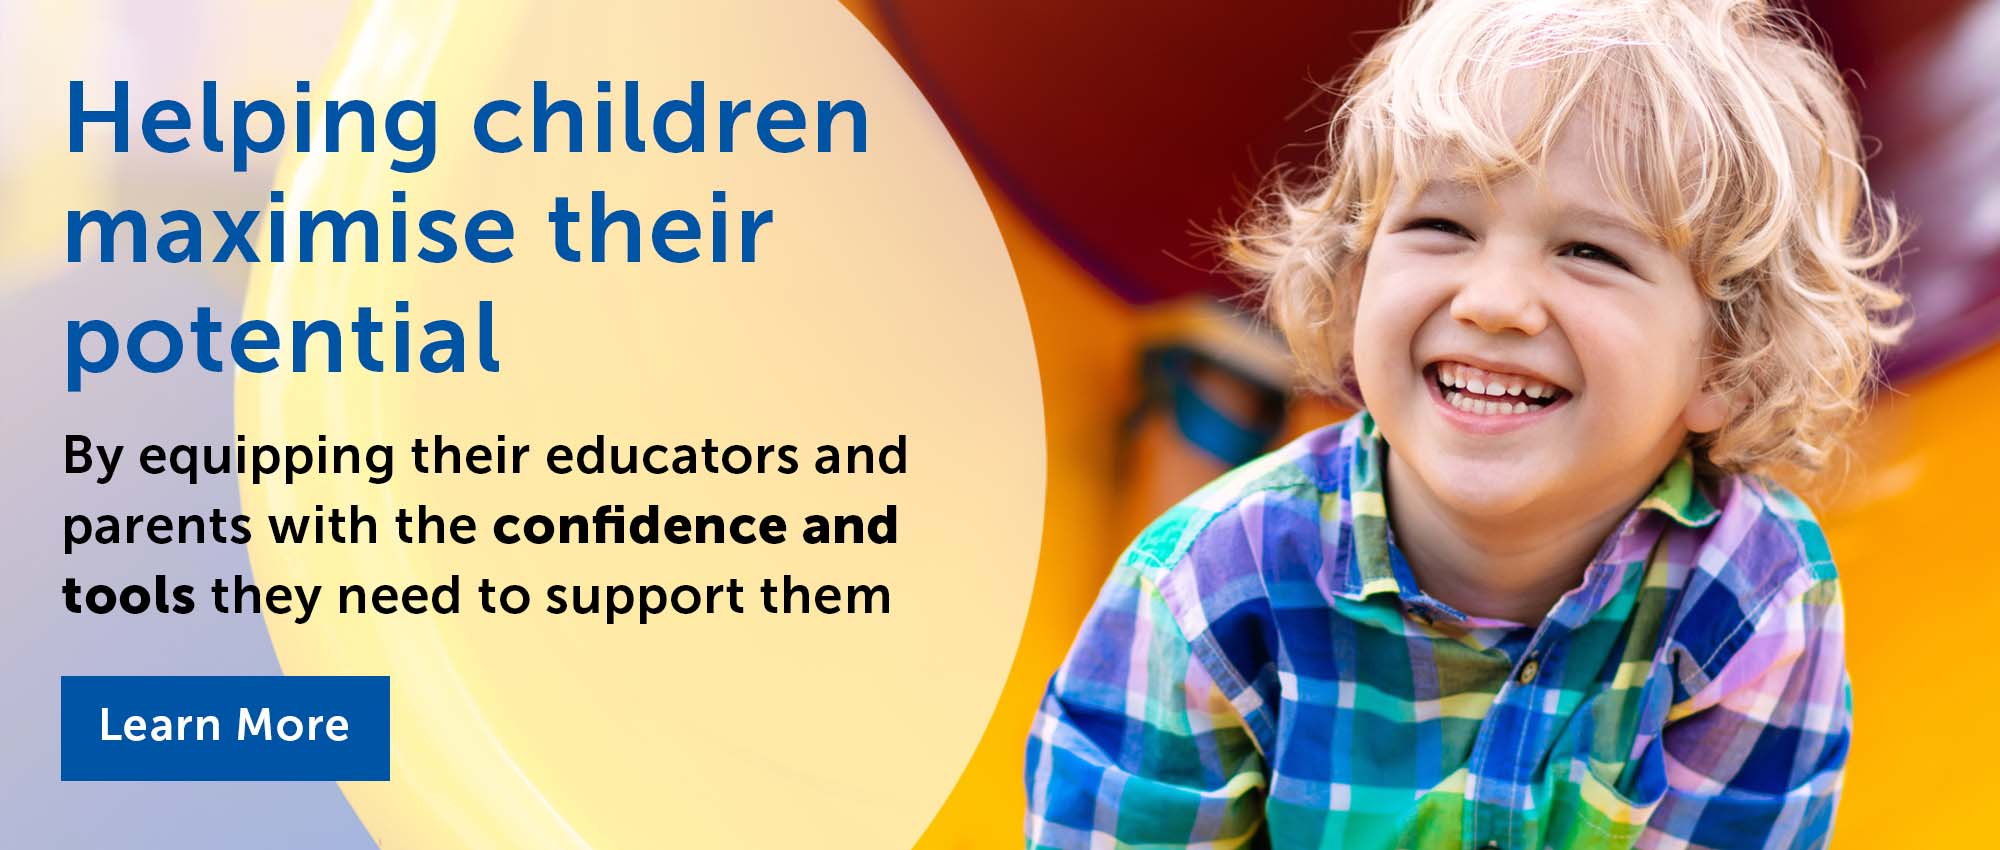 Boy sliding down yellow slide with a big smile Text Supporting parents and educators through online occupational therapy advice and courses Learn More